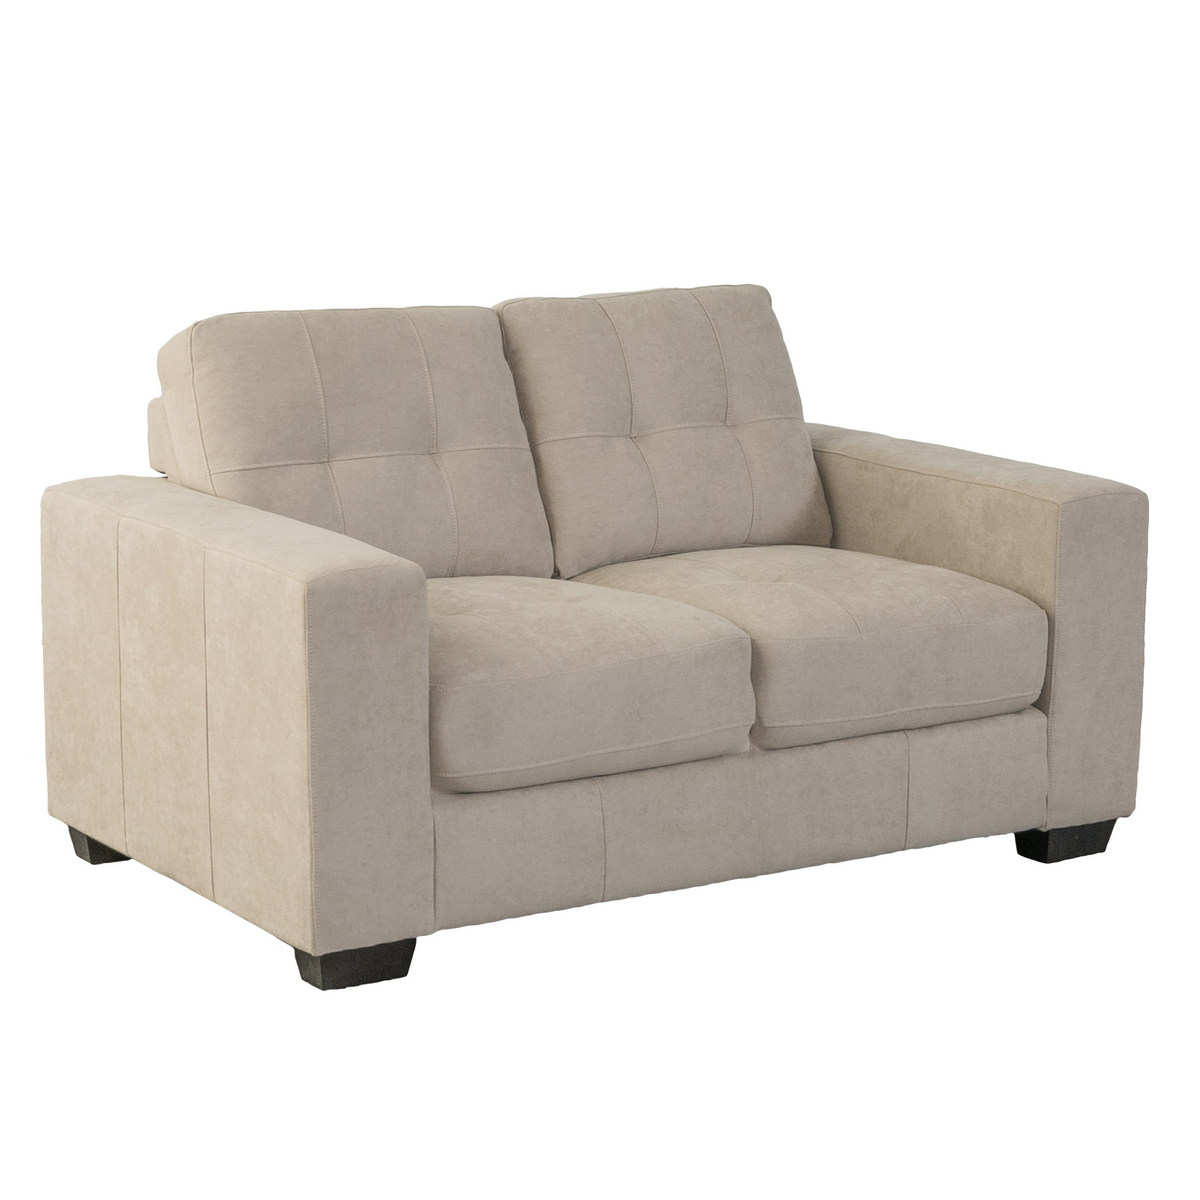 Corliving Club Tufted Beige Chenille Fabric Loveseat